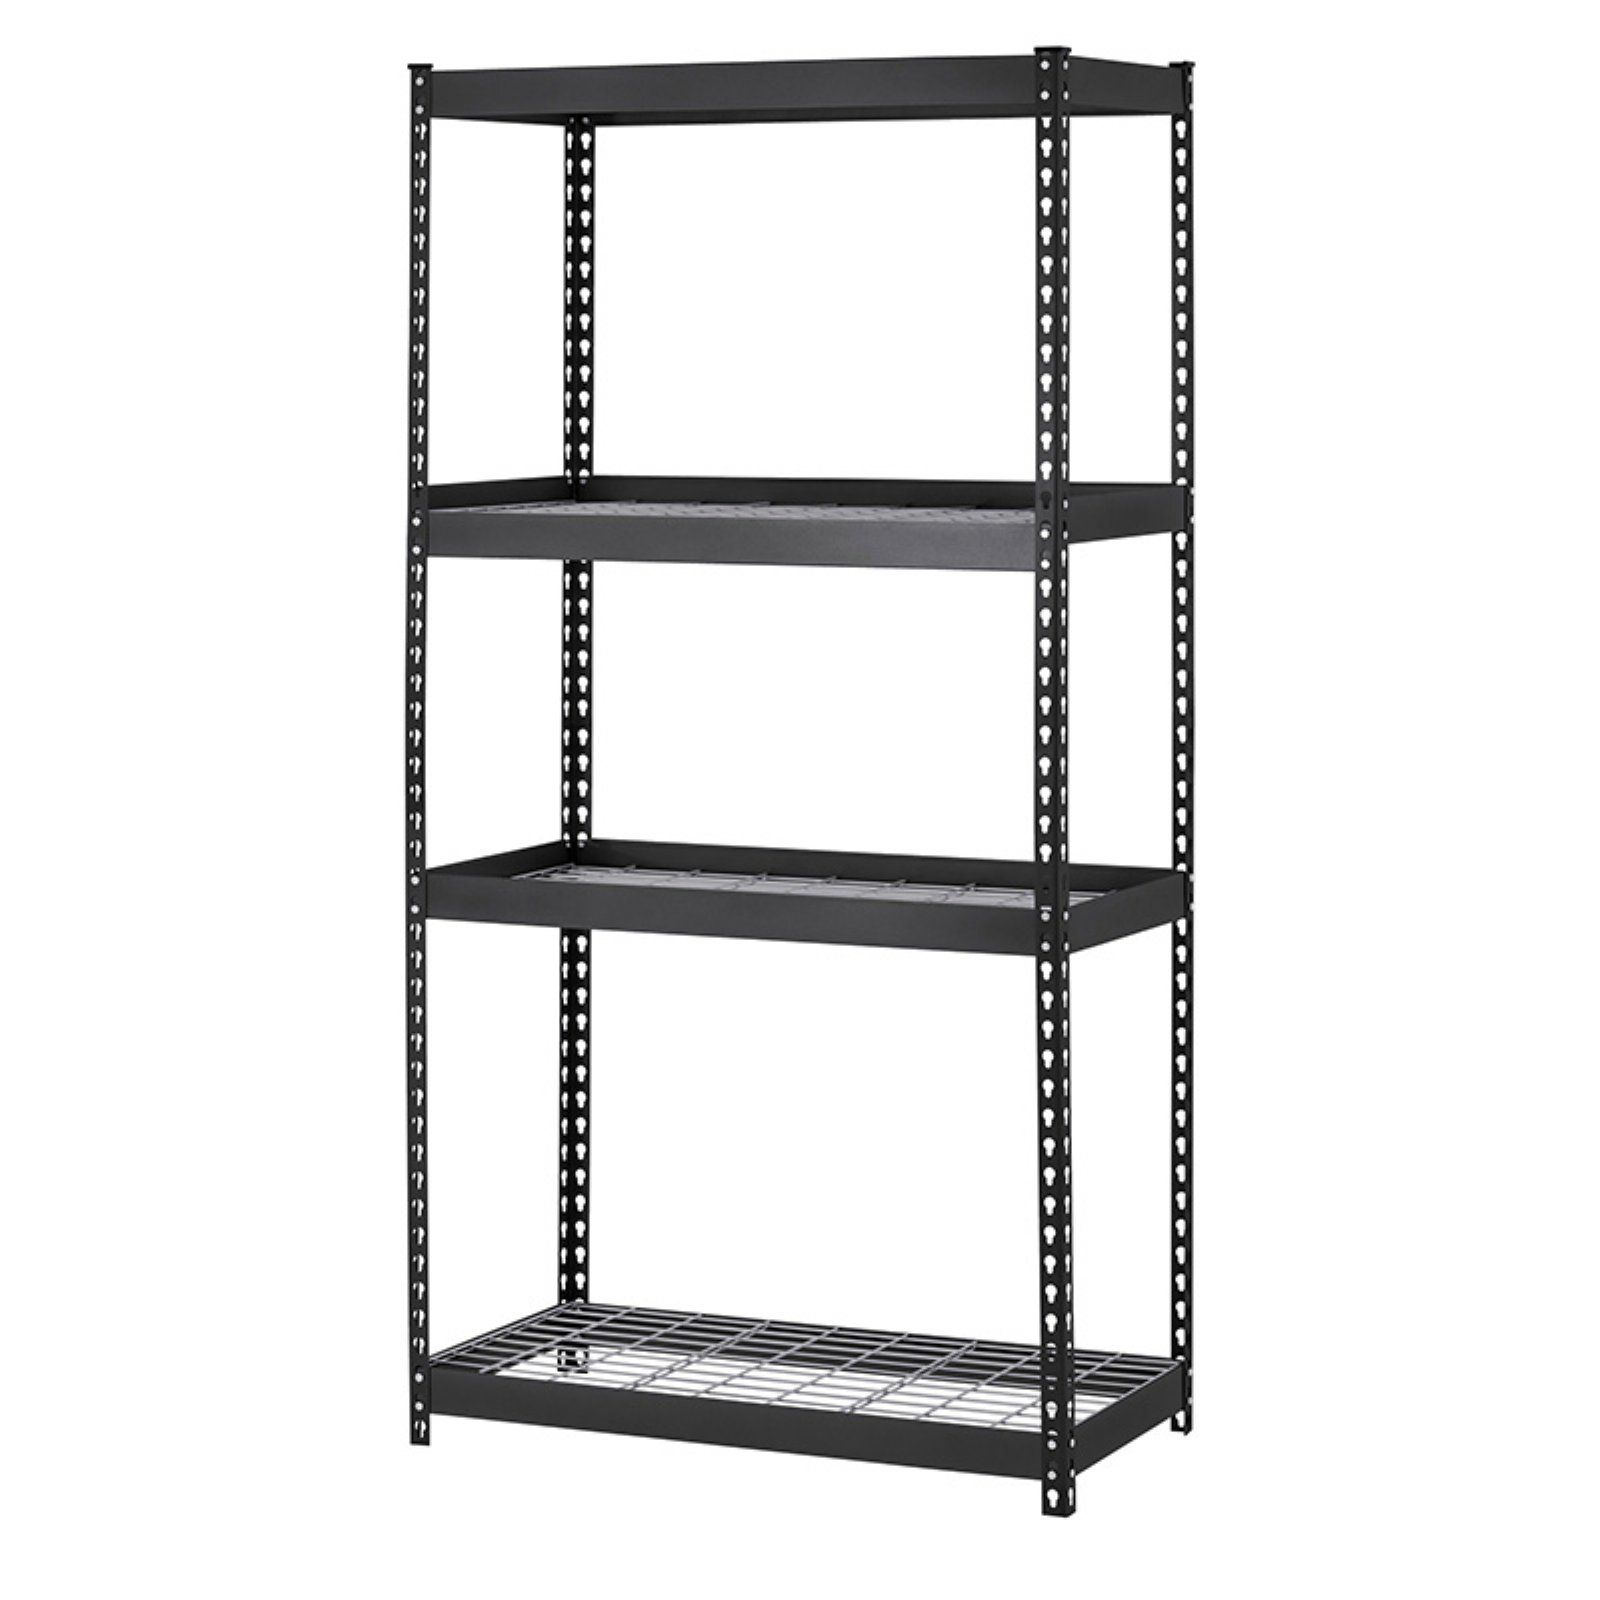 "Muscle Rack 36""W x 18""D x 60""H Four-Shelf Heavy-Duty Steel Shelving Unit, Black"